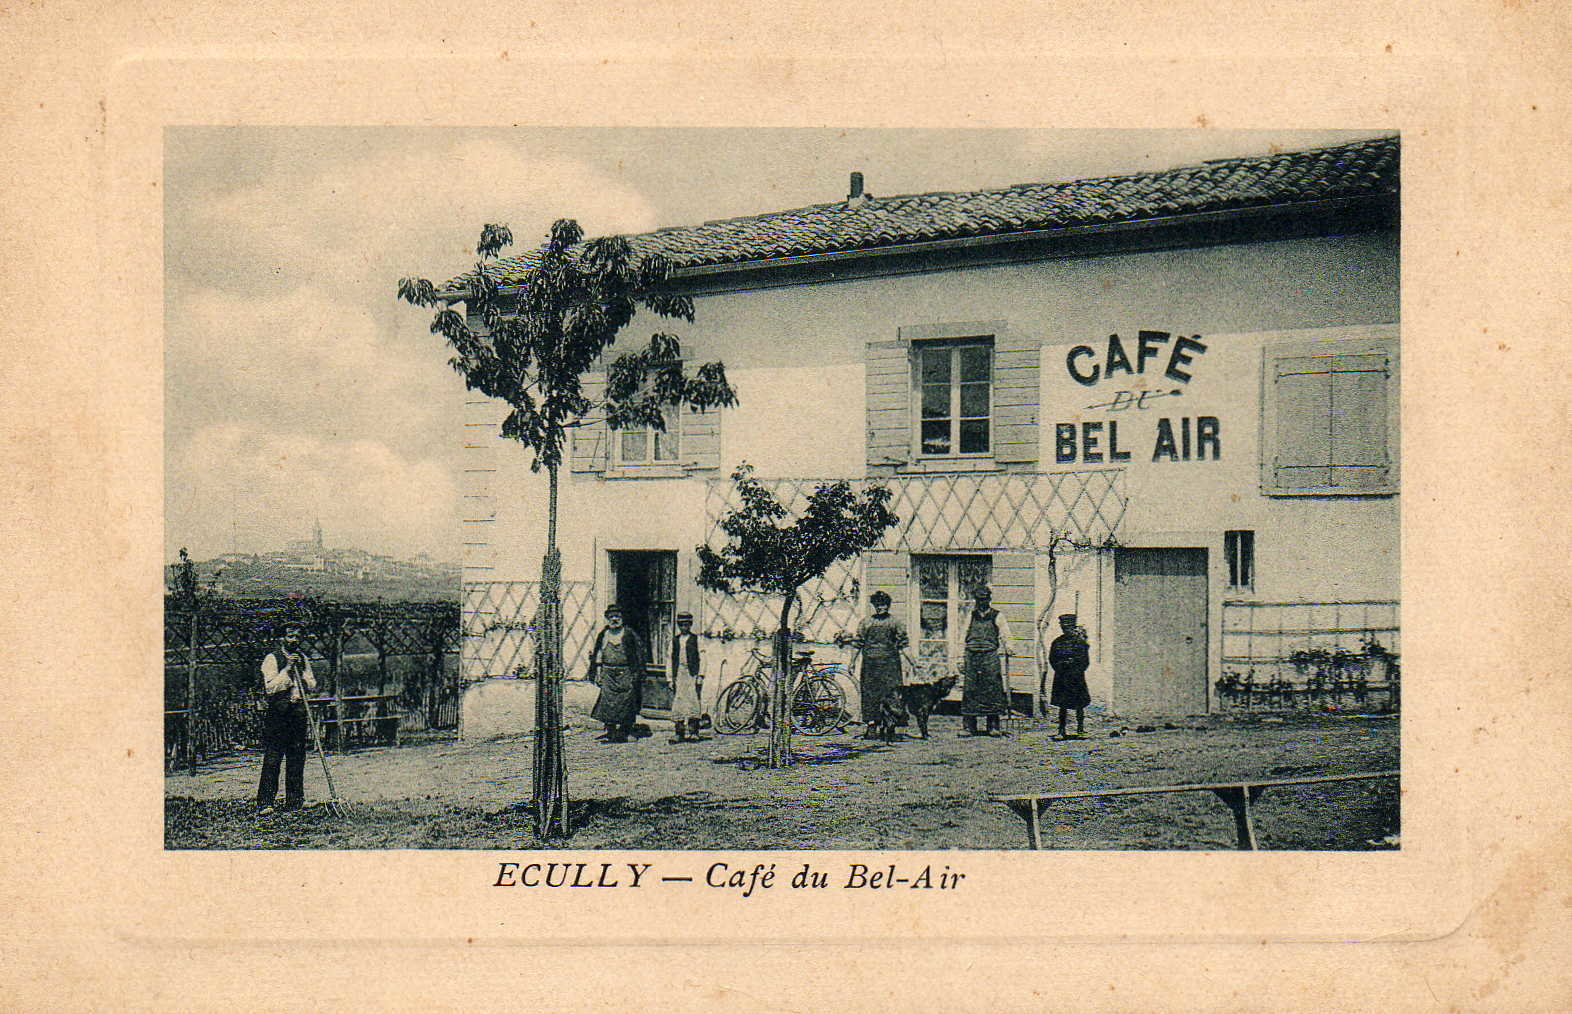 Ecully - Le Café du Bel-Air